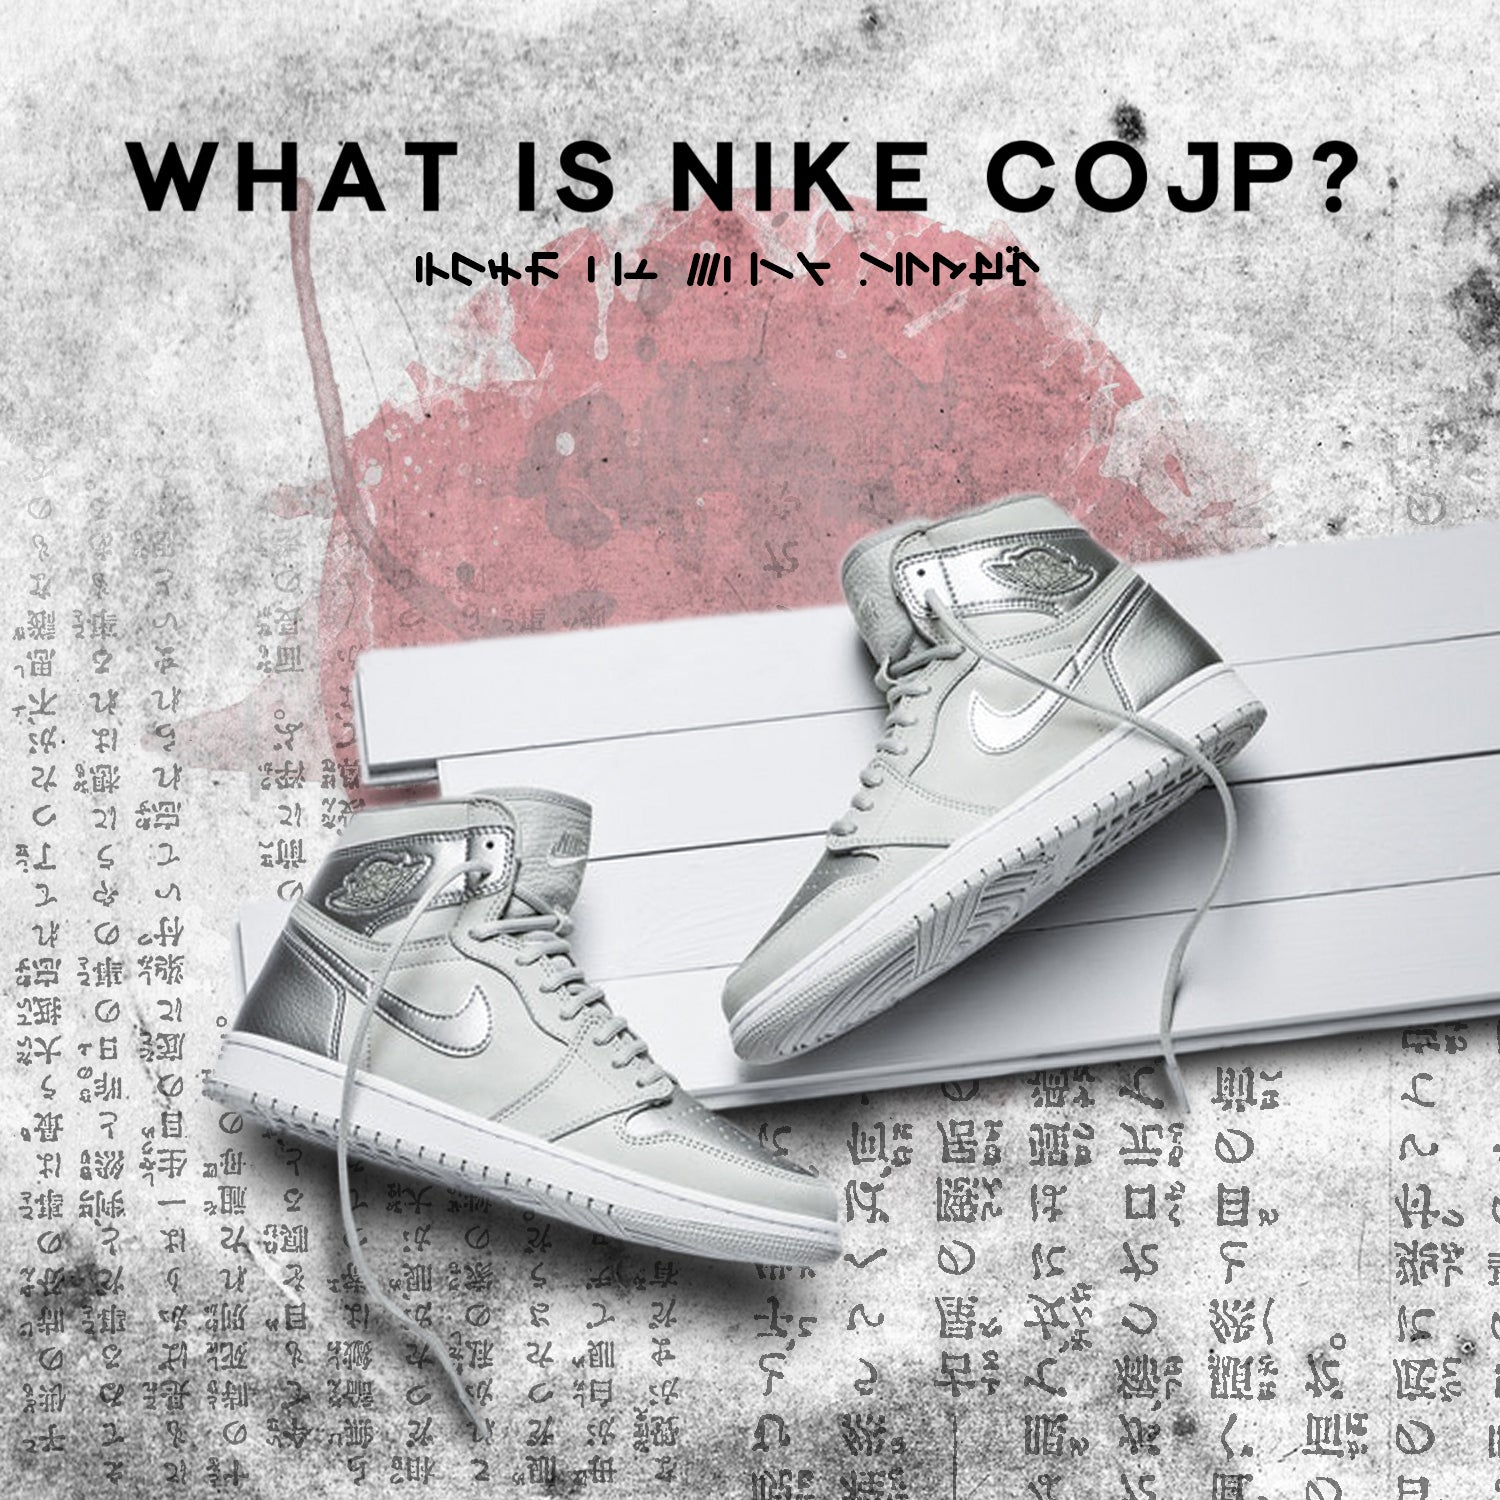 Nike Archives: The CO.JP Project.